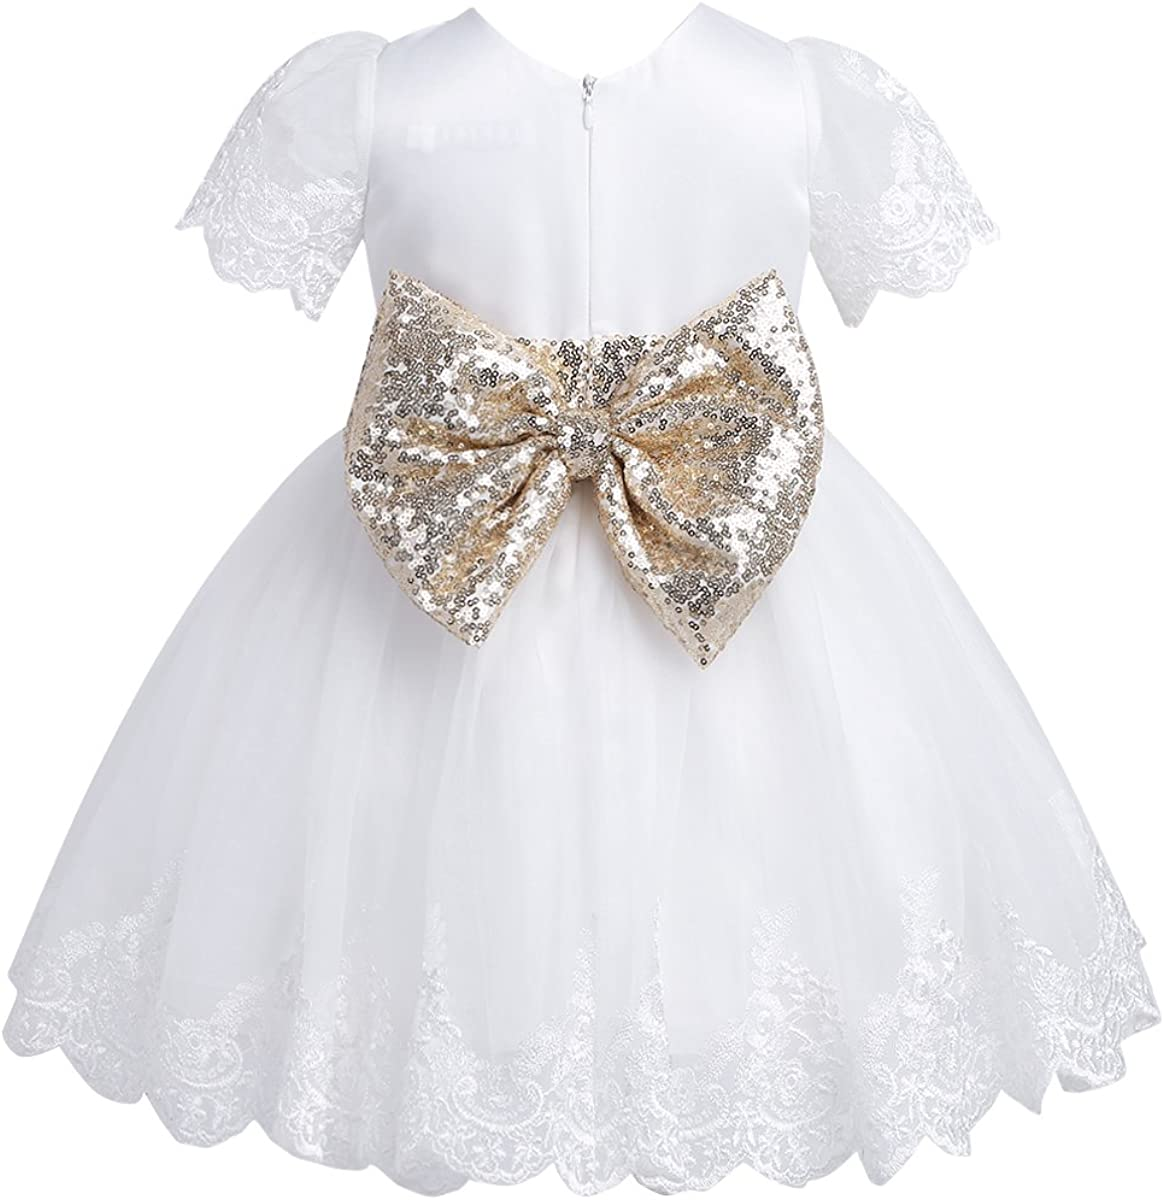 TiaoBug Baby Girls Sequined Bowknot Flower Girl Dress Embroidered Wedding Birthday Party Tutu Gown